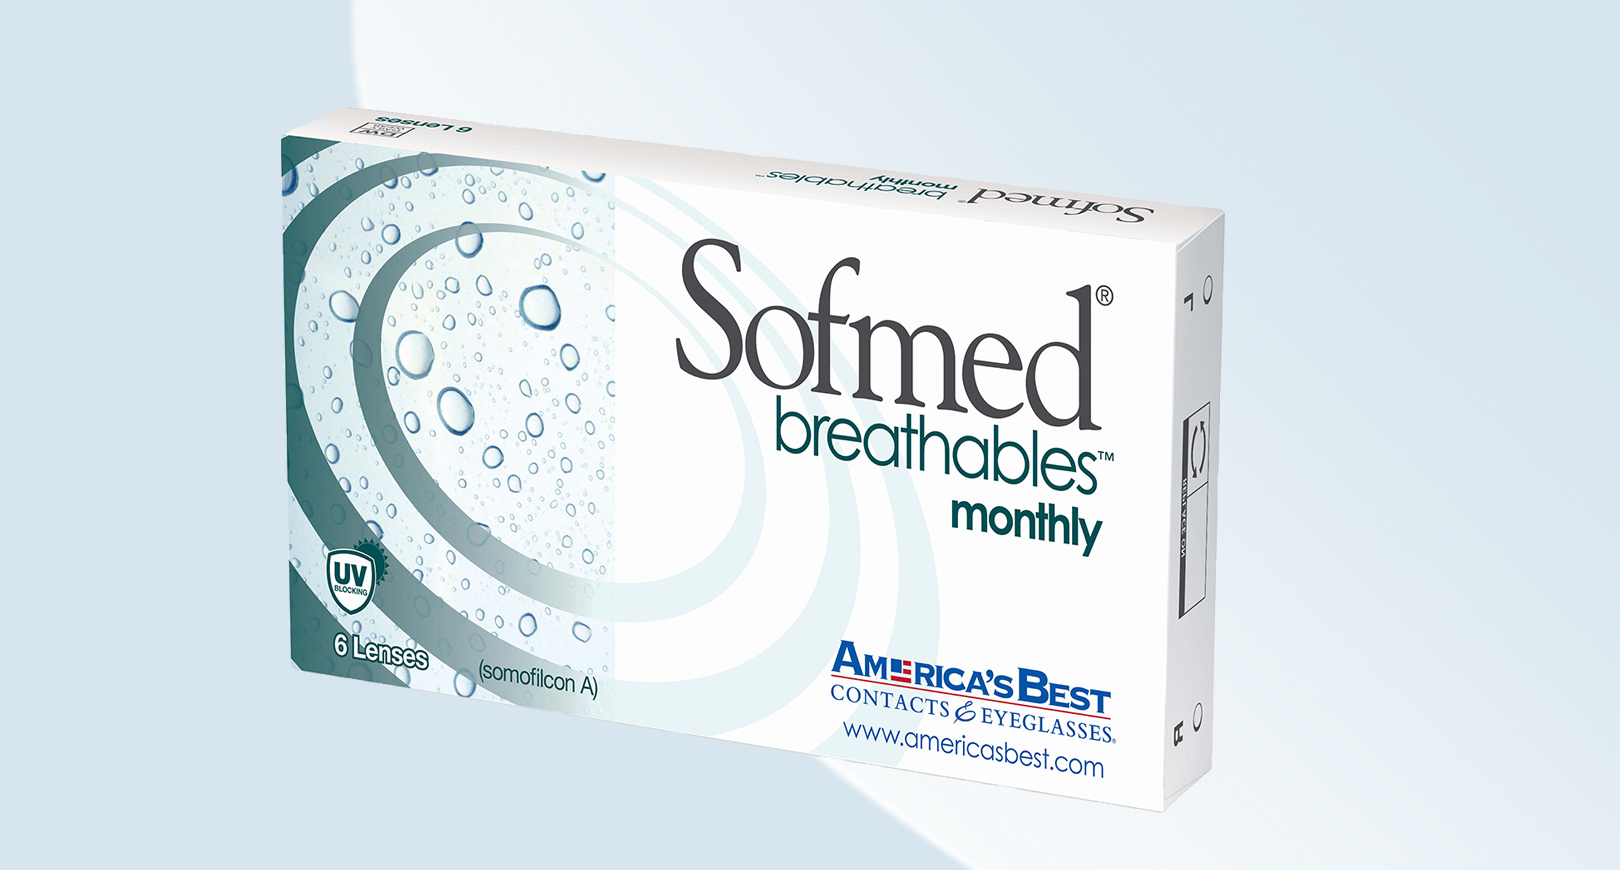 Box of Sofmed Breathables Monthly contact lenses